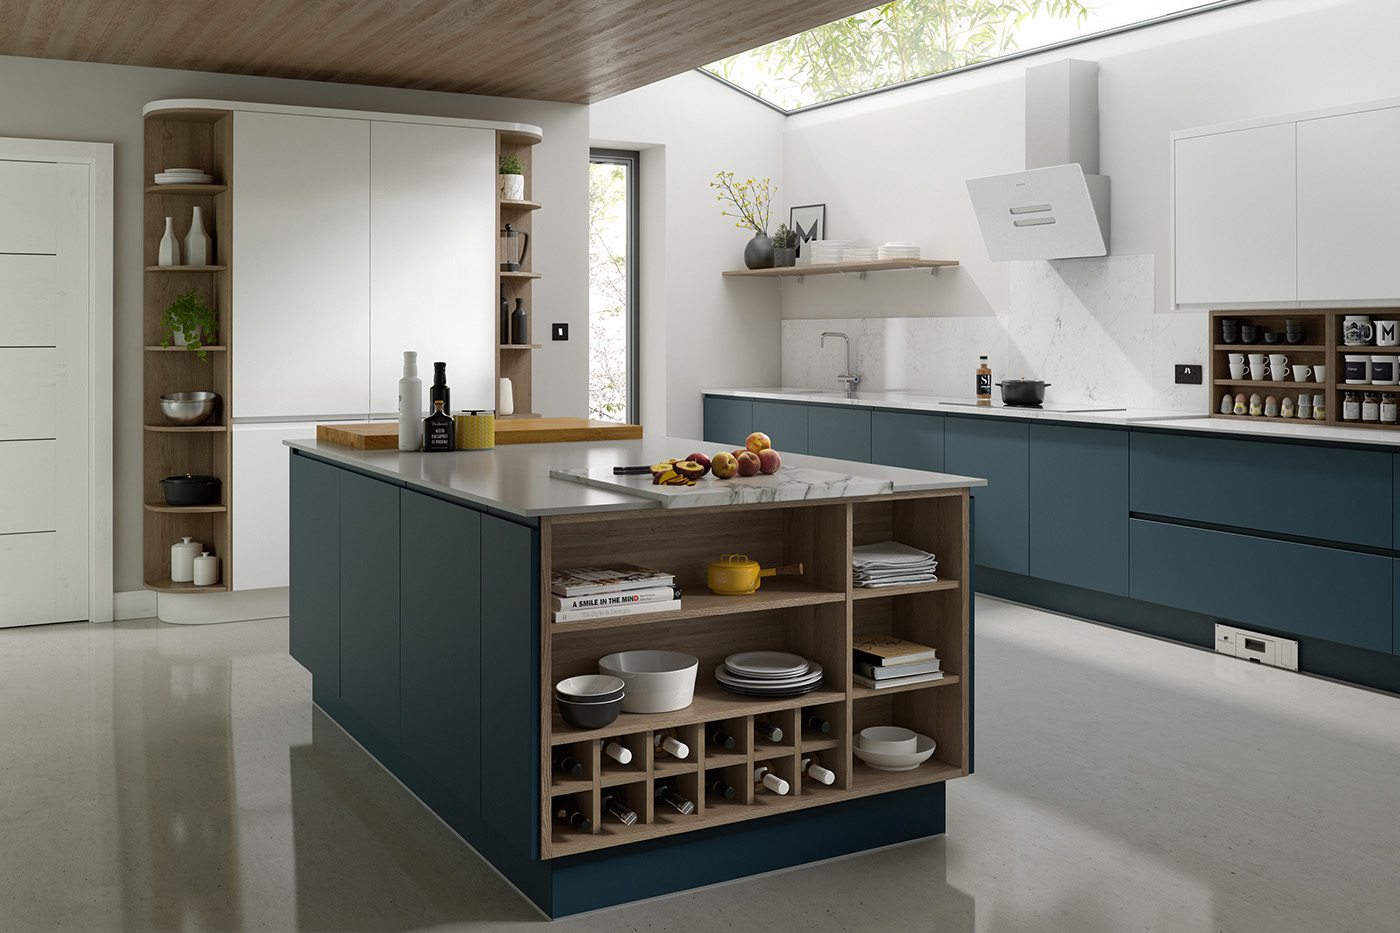 Infinity contemporary kitchens cgi on behance for Infinity kitchen designs